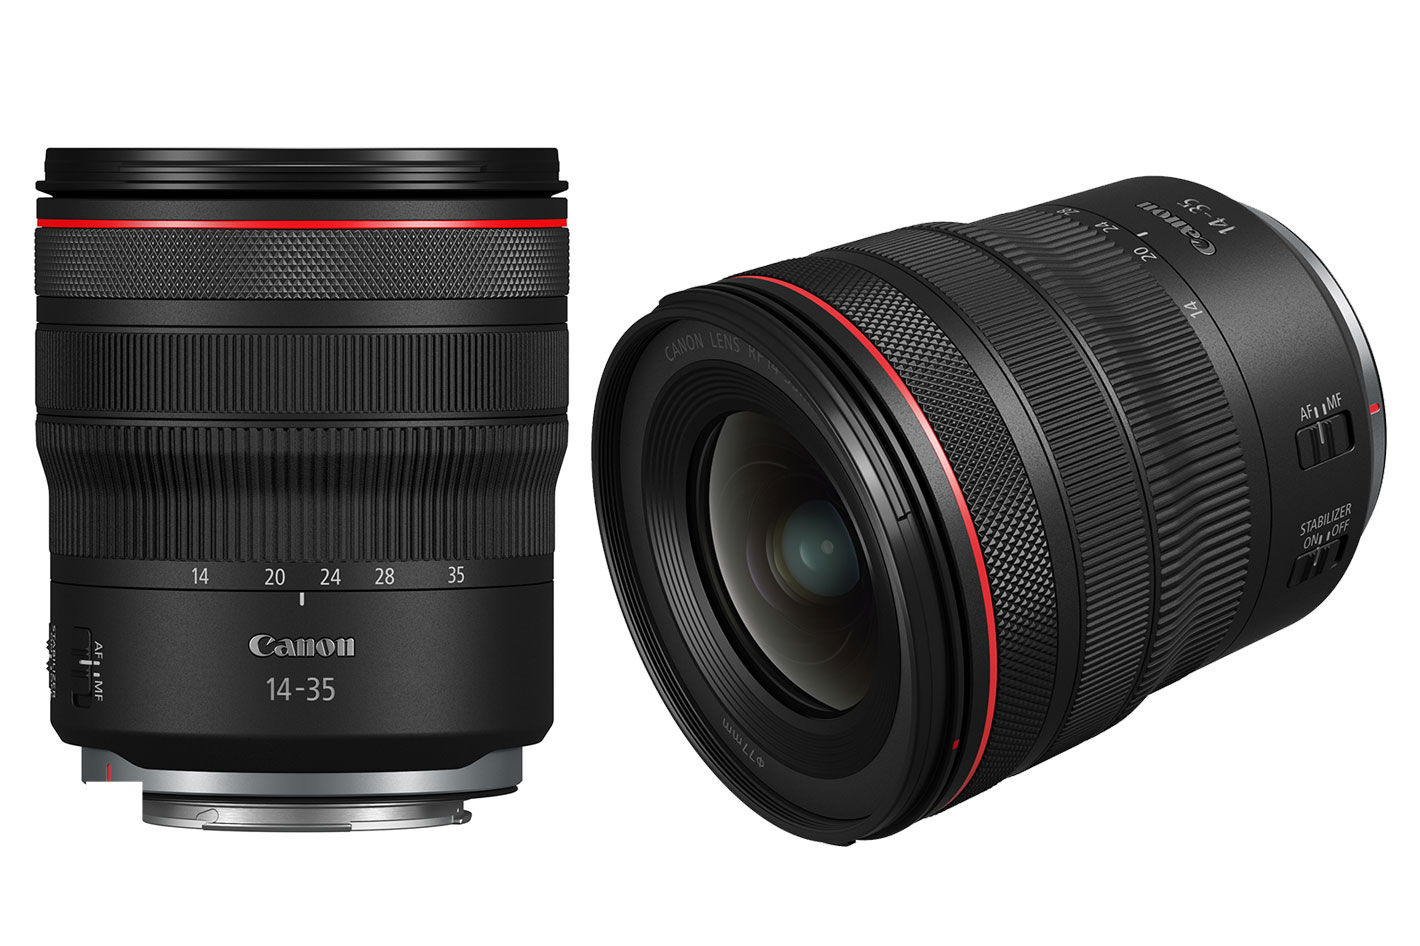 Canon RF14-35mm F4 L IS USM, a lens for all wide-angle needs